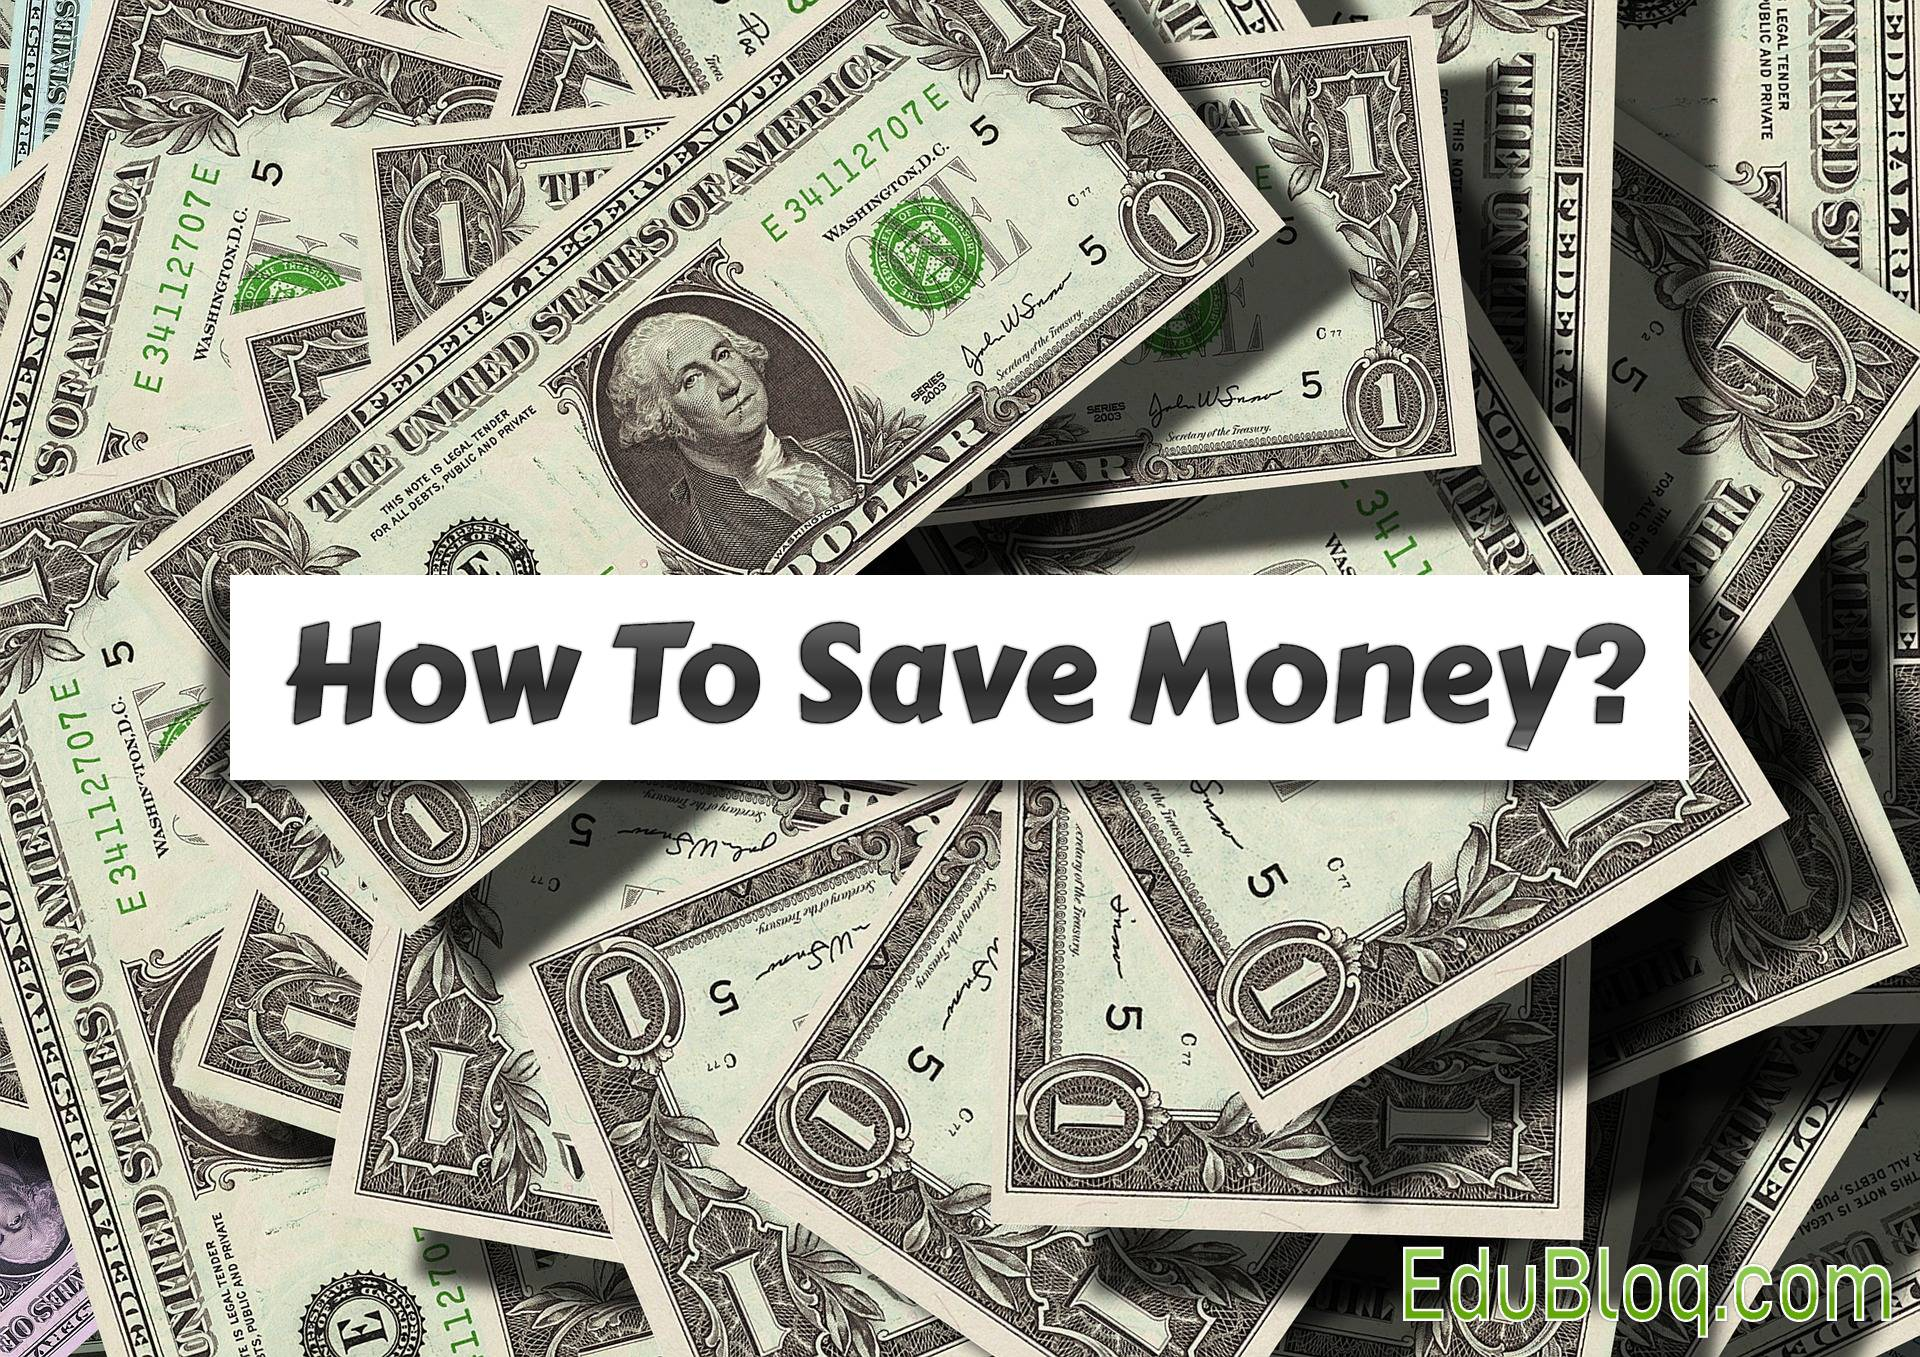 How To Save Money - How To Be Financially Independent